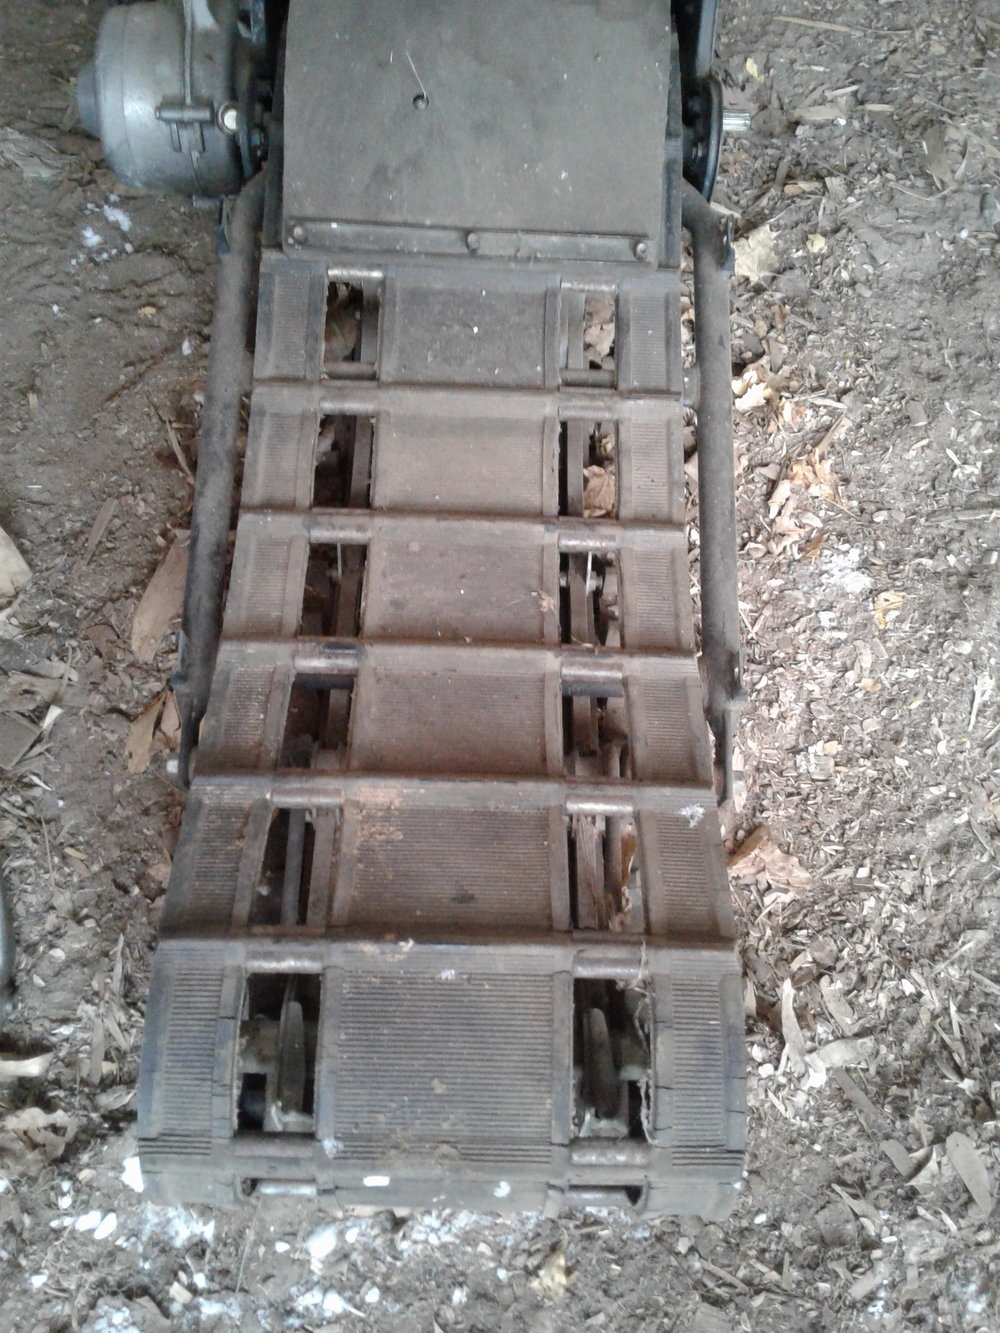 This is one of the old tracks that was damaged. This whole project was about taking off the old and putting on the new track.